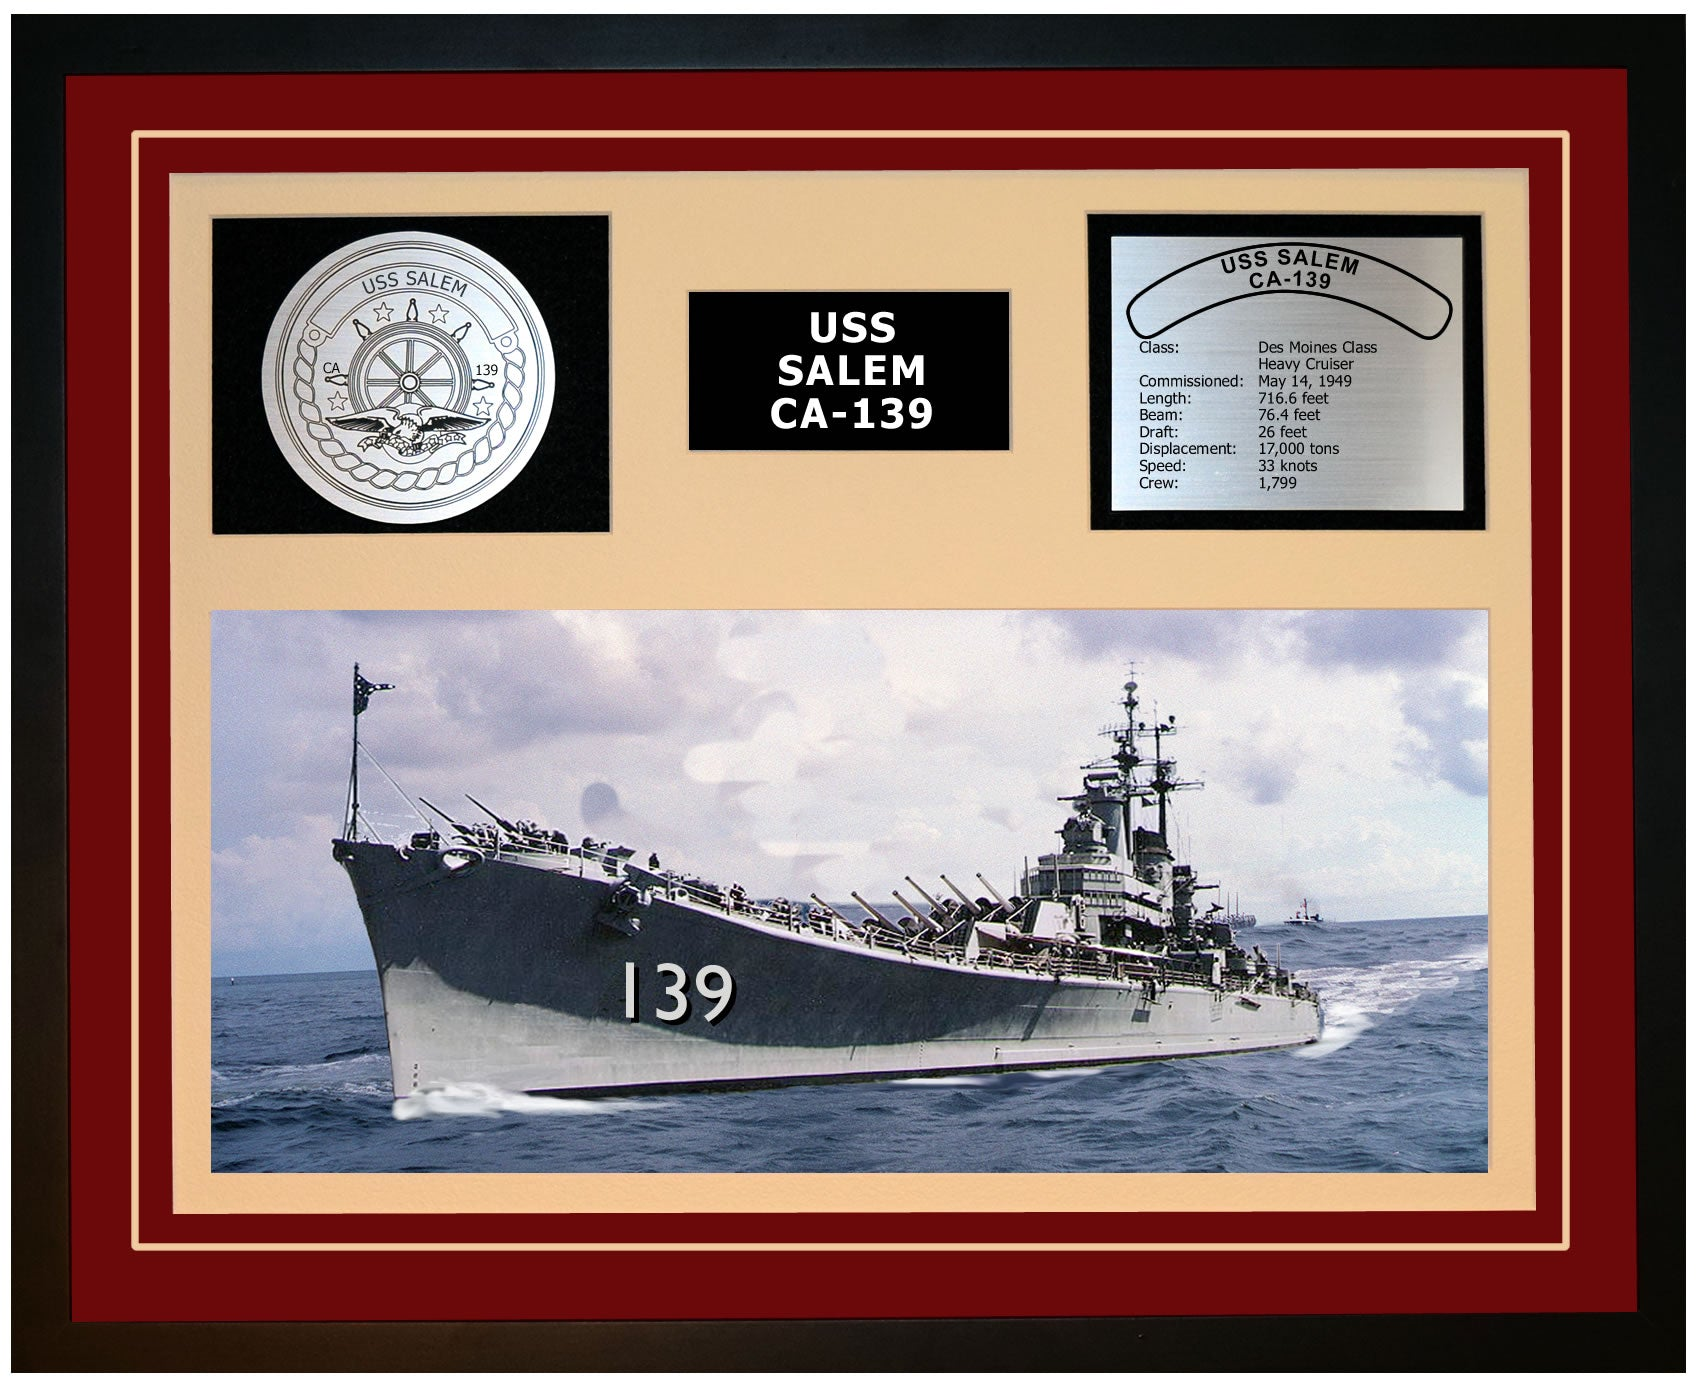 USS SALEM CA-139 Framed Navy Ship Display Burgundy